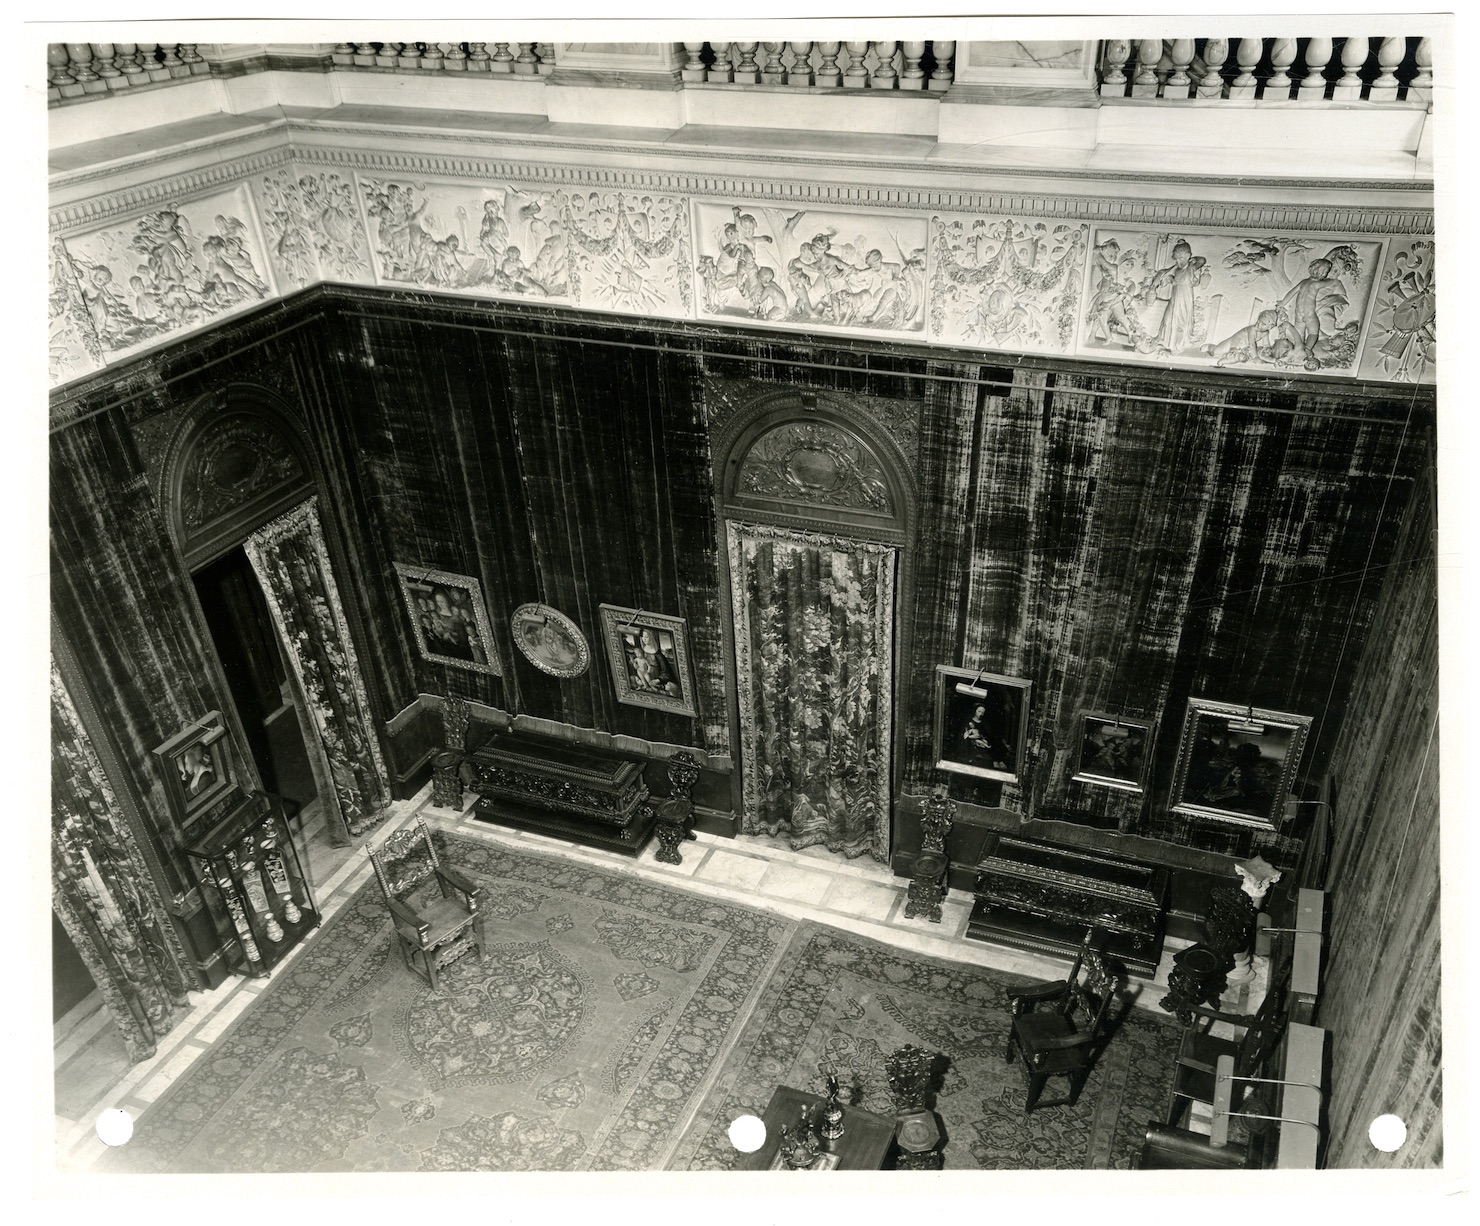 Frieze created by Austrian sculptor Karl Bitter in the Main Hall of Huntington Mansion in New York City, built in 1895